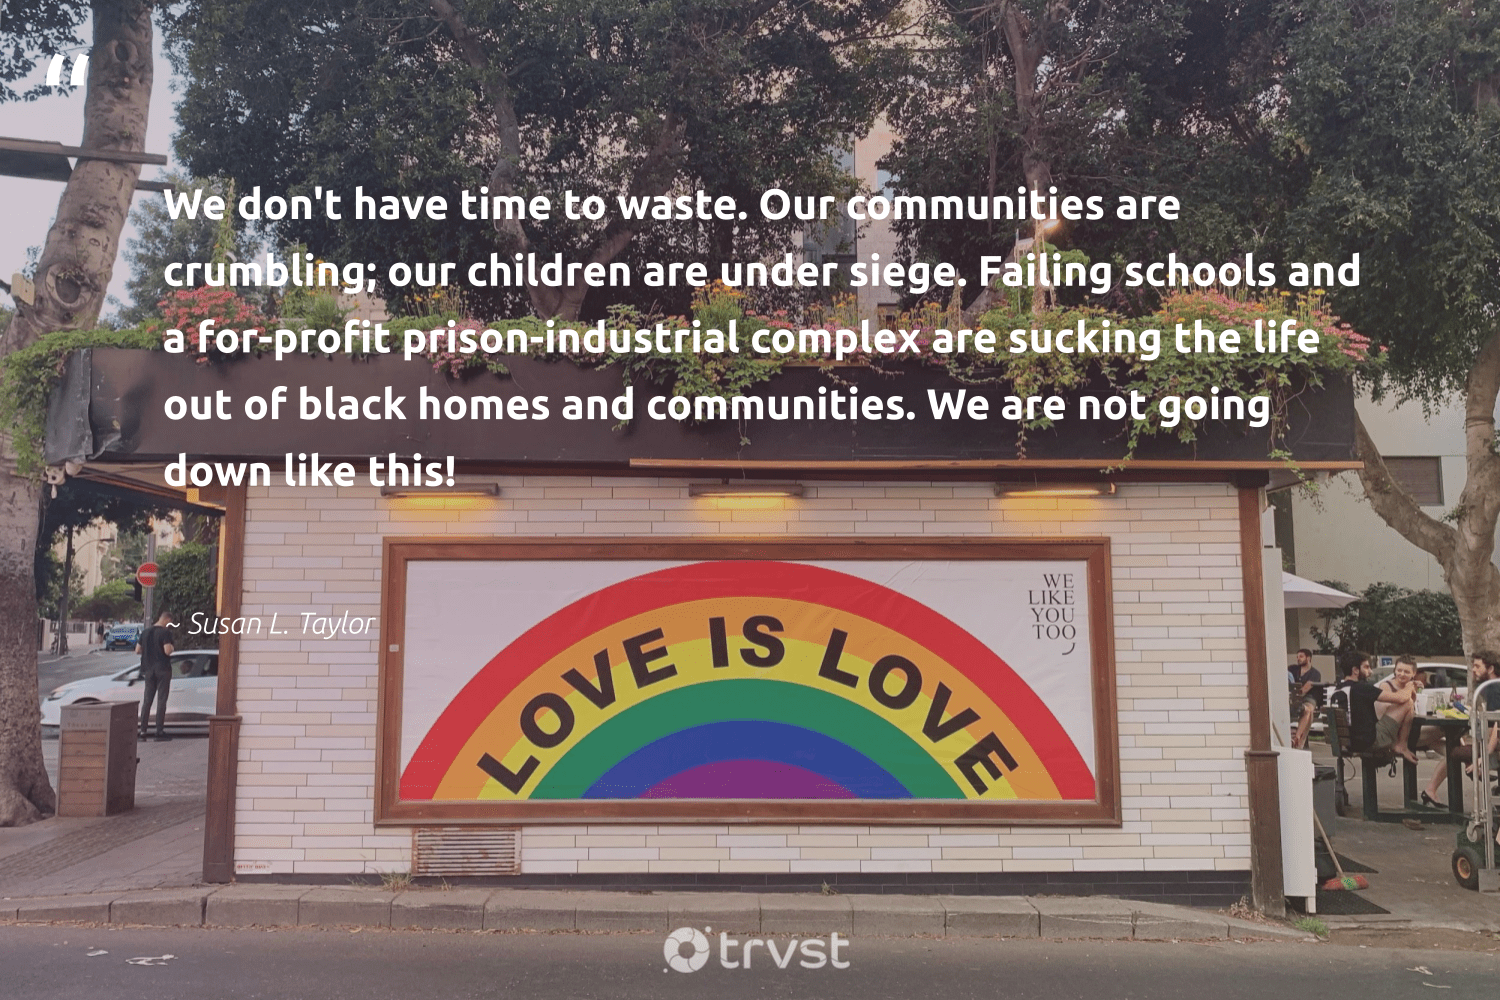 """We don't have time to waste. Our communities are crumbling; our children are under siege. Failing schools and a for-profit prison-industrial complex are sucking the life out of black homes and communities. We are not going down like this!""  - Susan L. Taylor #trvst #quotes #waste #communities #children #bethechange #socialchange #socialgood #thinkgreen #giveback #planetearthfirst #makeadifference"